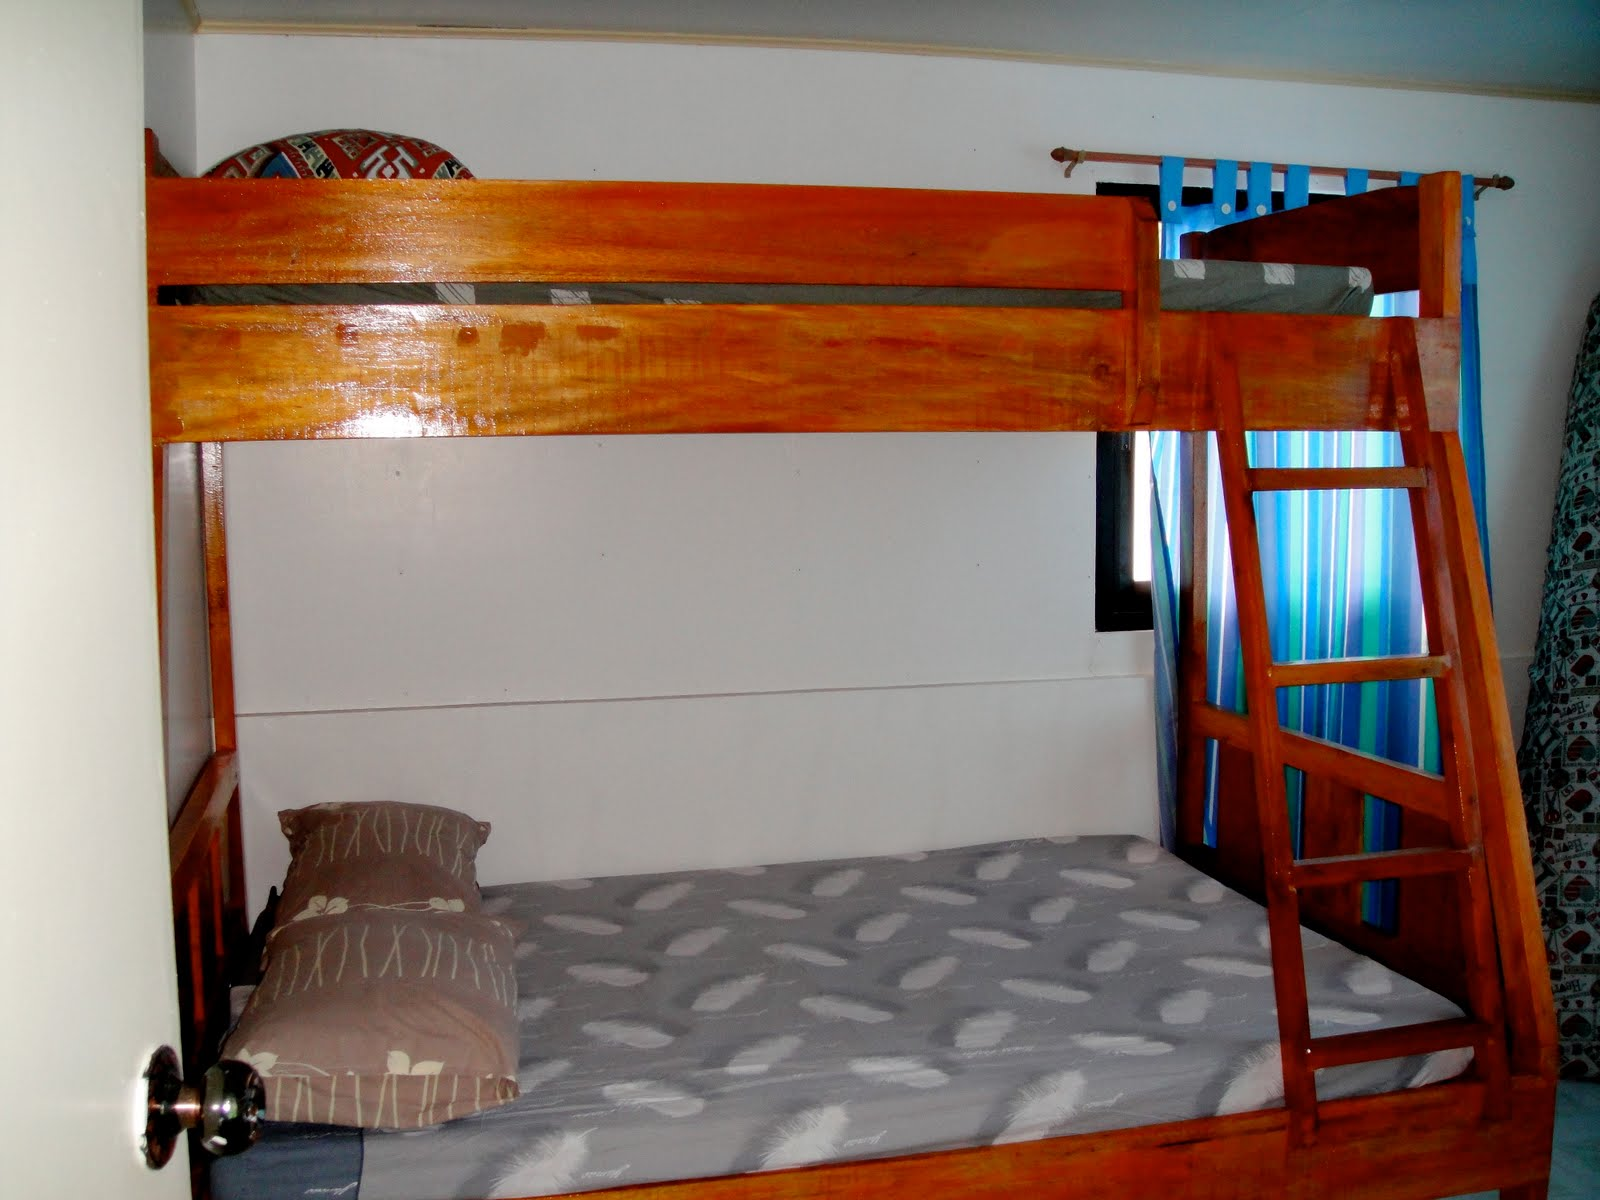 Tierra baguio double deck bed for Double deck bed images